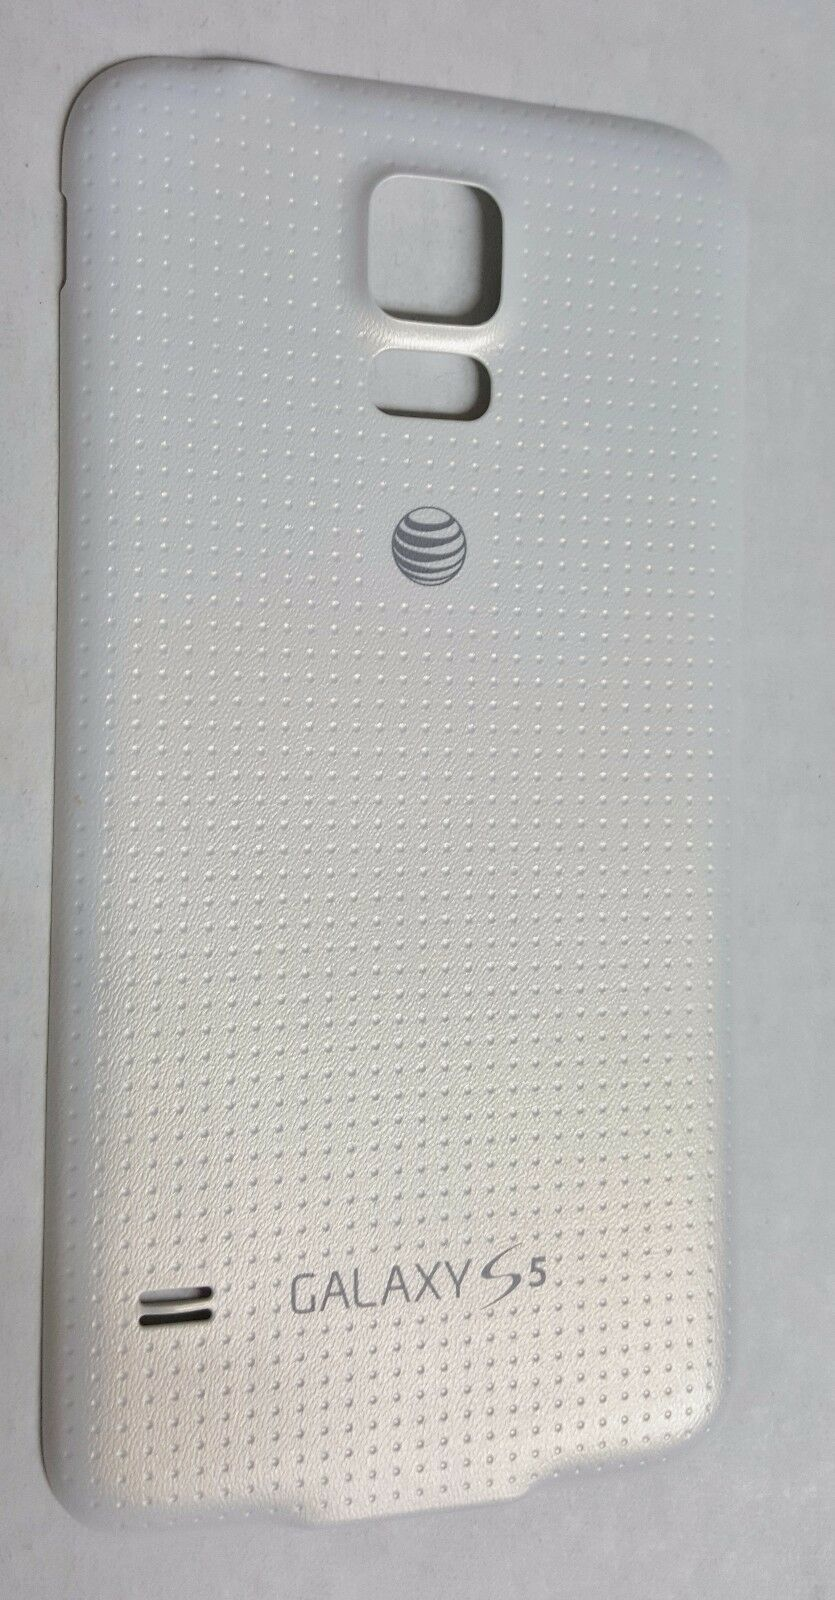 Primary image for OEM Samsung Galaxy S5 G900A Battery Door Back Cover - AT&T - White